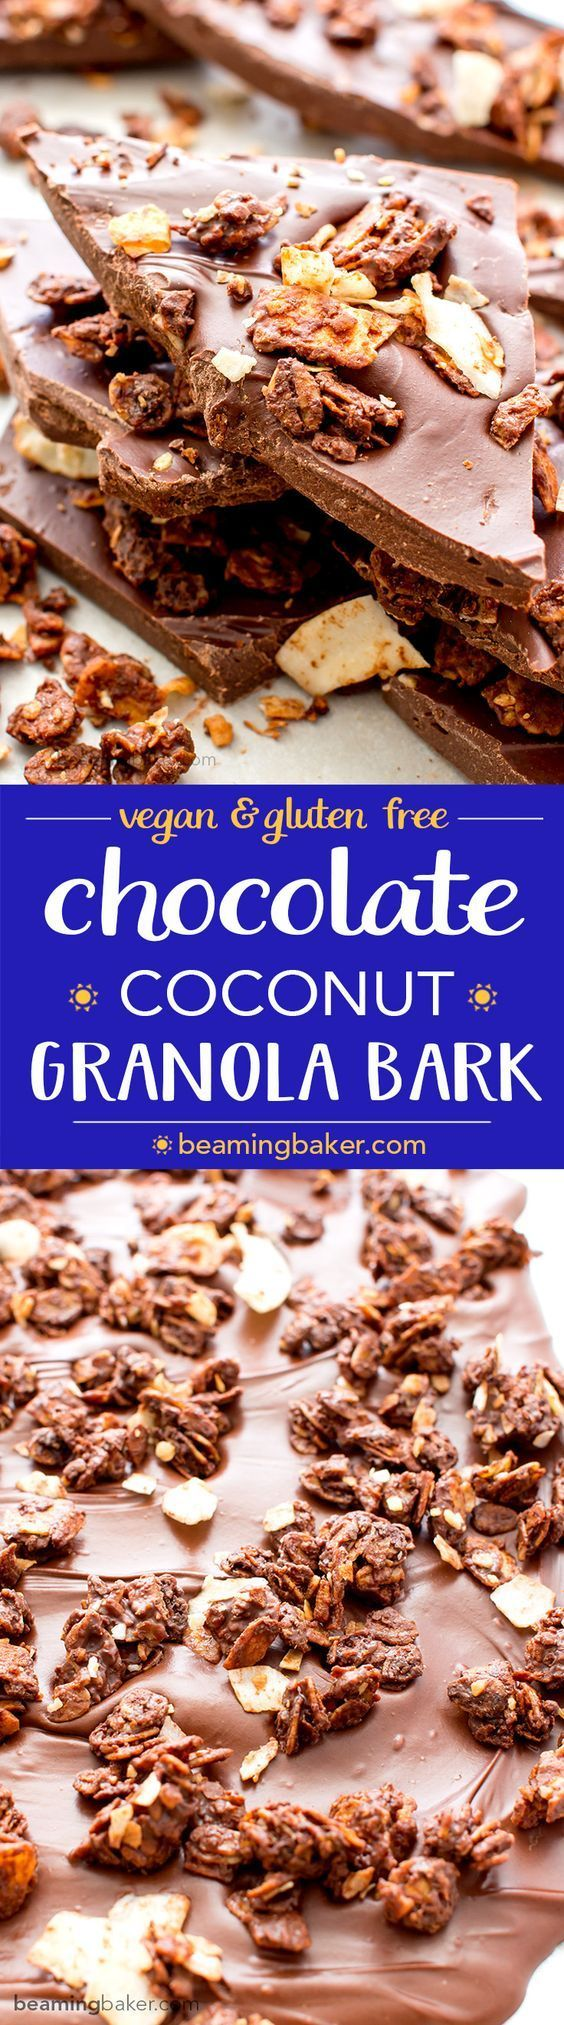 Chocolate Coconut Granola Bark (V+GF): Richly indulgent, heavenly chocolate covered coconut granola enrobed in a thick layer of chocolate. http://BeamingBaker.com #Vegan #GlutenFree